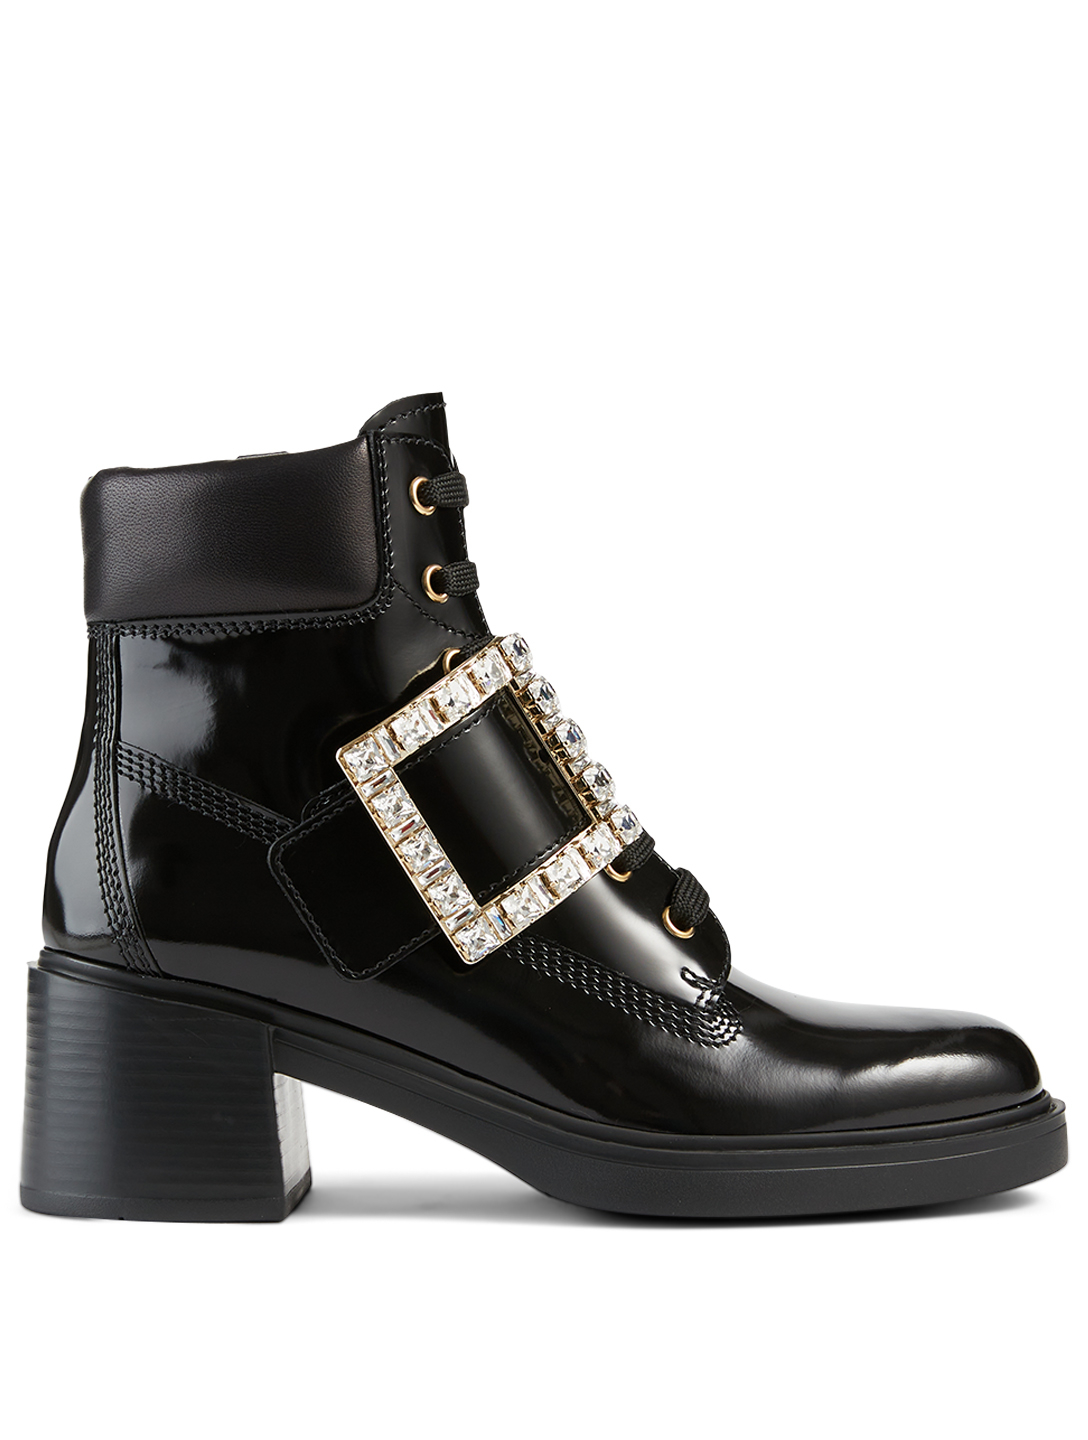 ROGER VIVIER Viv' Rangers Strass Leather Lace-Up Heeled Ankle Boots Women's Black